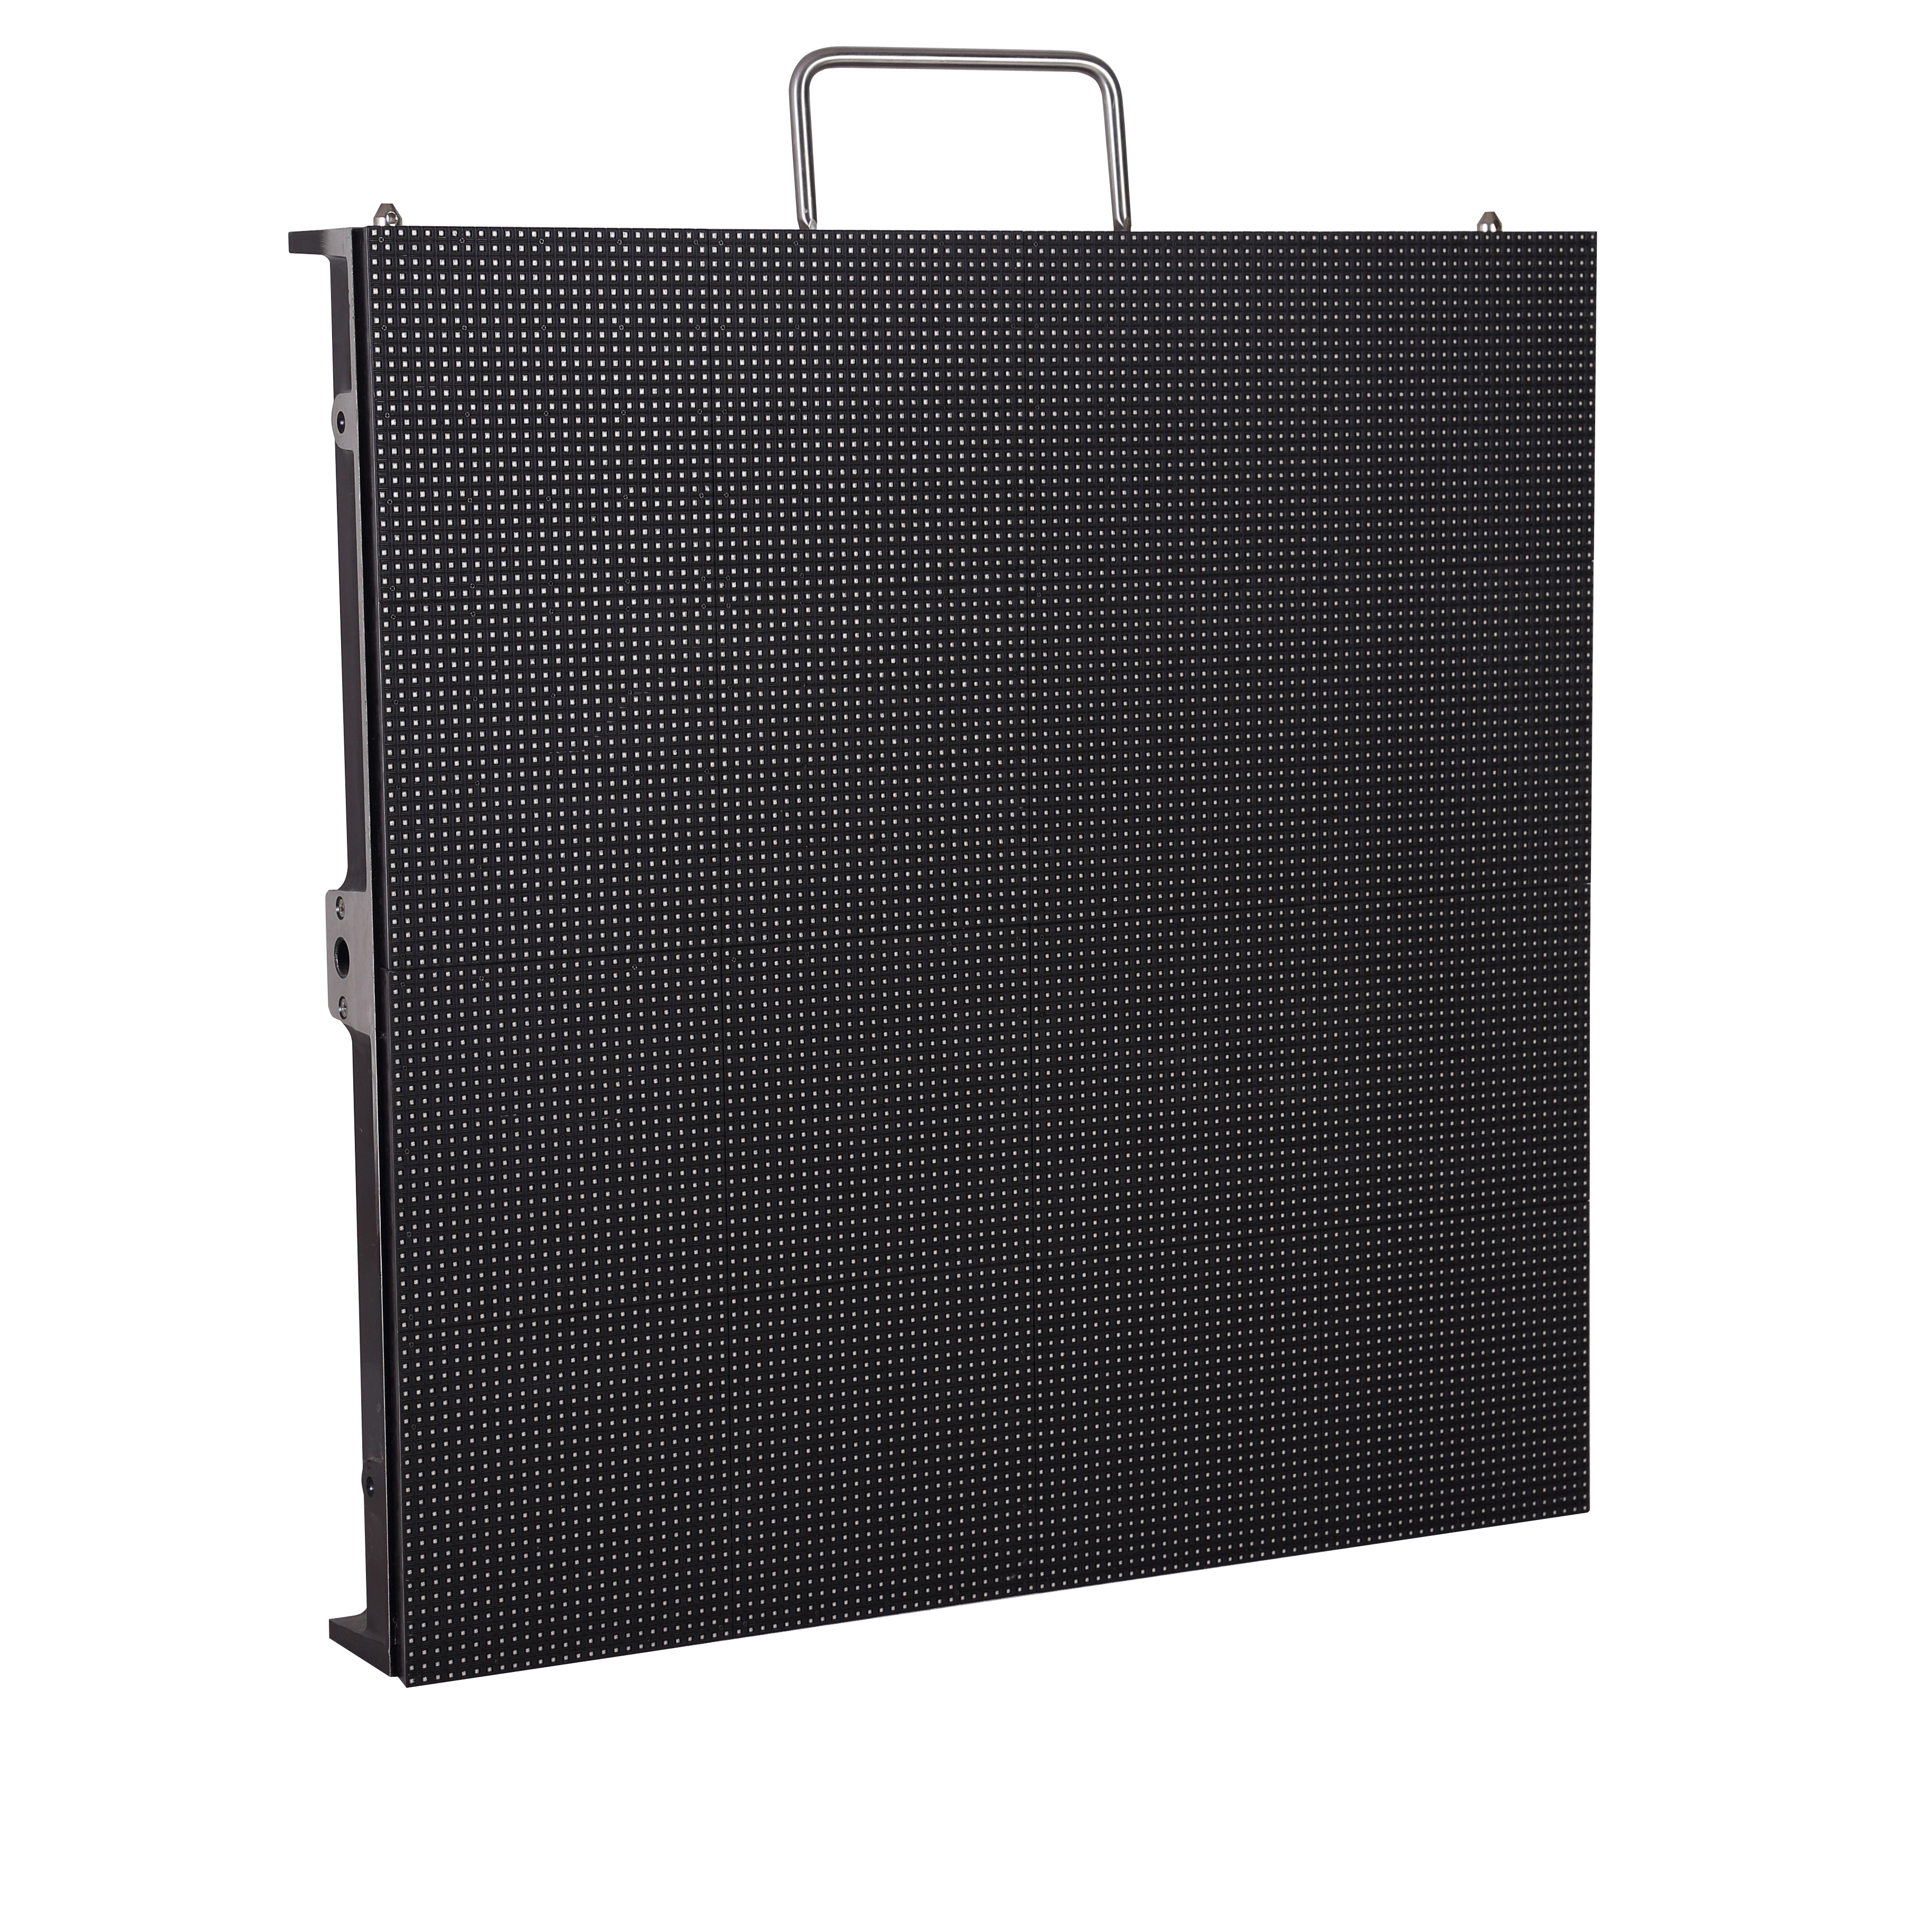 500x500mm P3.91 <strong>video</strong> also provide P1.9 p2.5 p3 p4 p4.81 p5 p6 p8 p10 led display wall panel